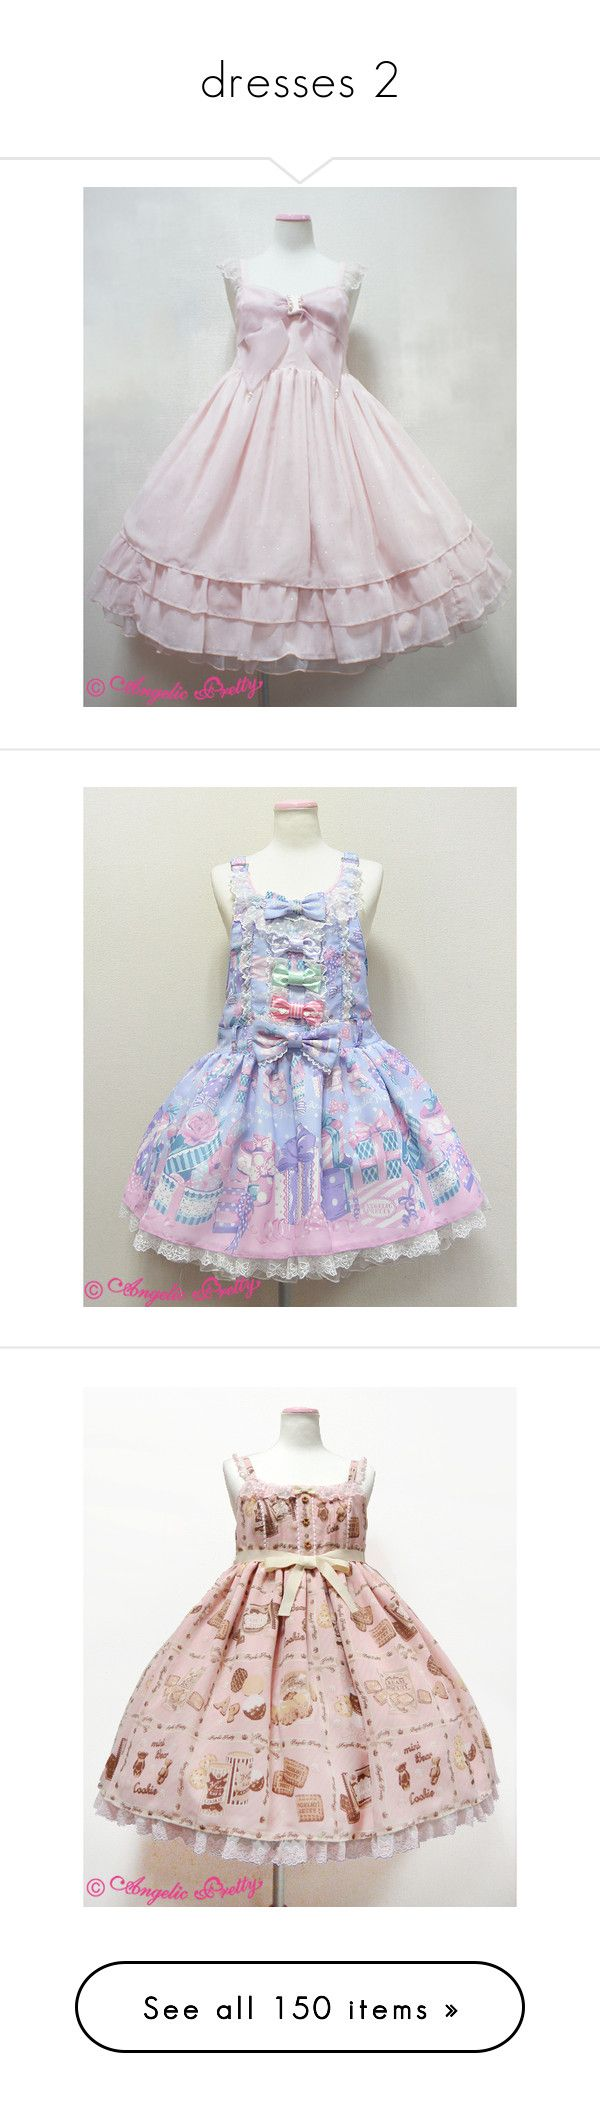 """""""dresses 2"""" by parfait-galaxy ❤ liked on Polyvore featuring lolita, dresses, angelic pretty, op, jumperskirt, jsk, silver, women's clothing, salopette and sheep garden"""